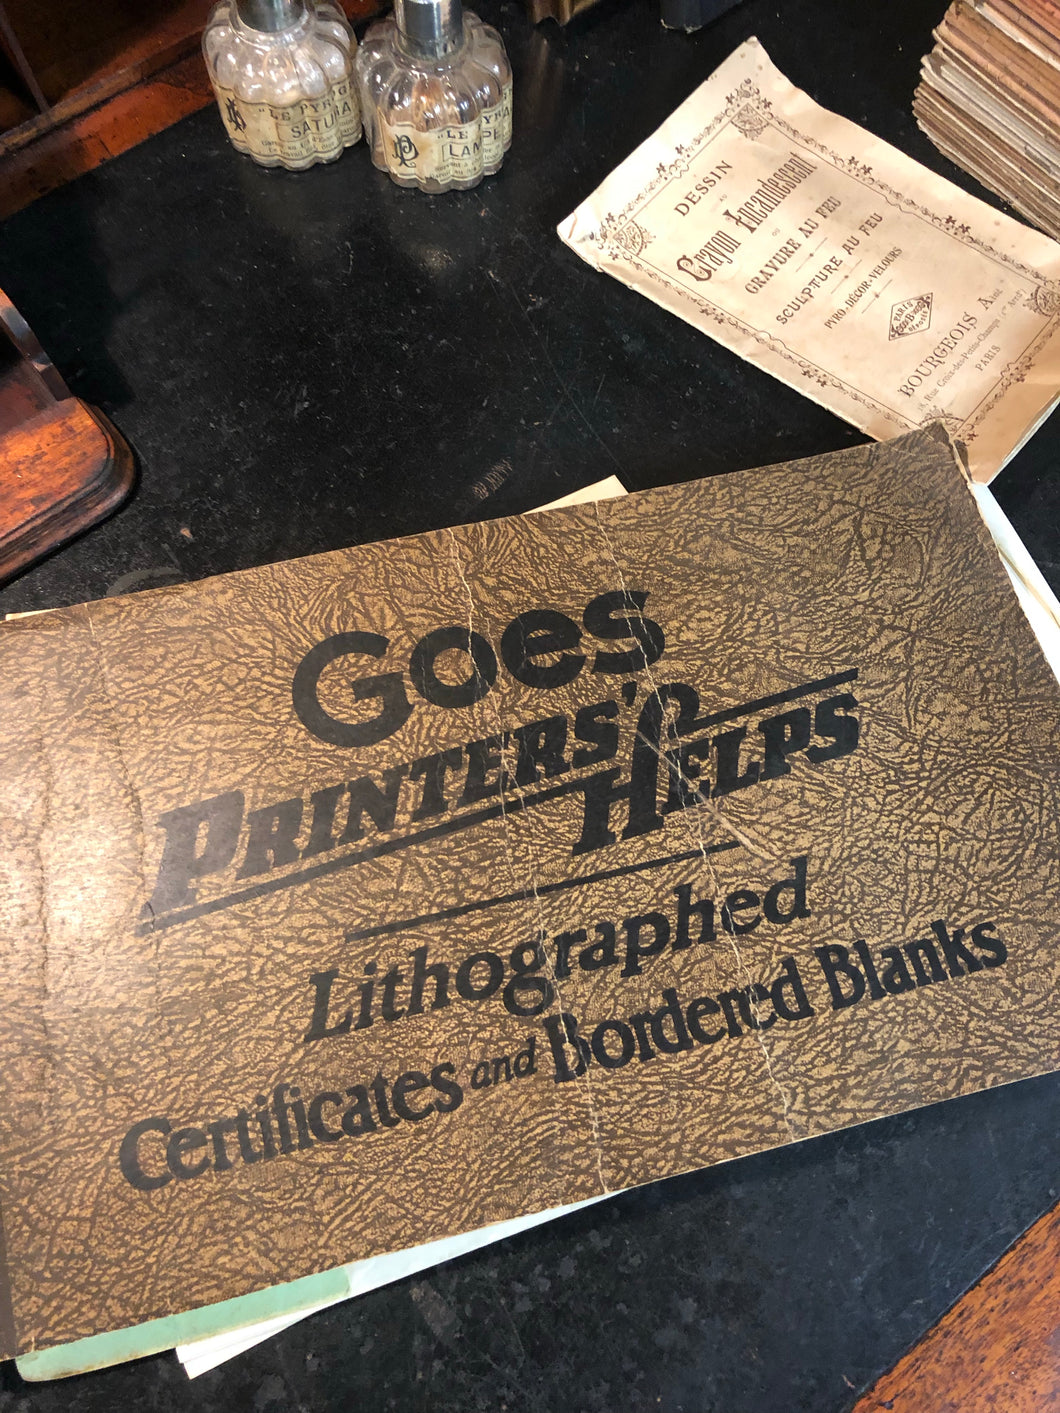 GOES PRINTER'S HELPS LITHOGRAPHED CERTIFICATES AND BORDERED BLANKS